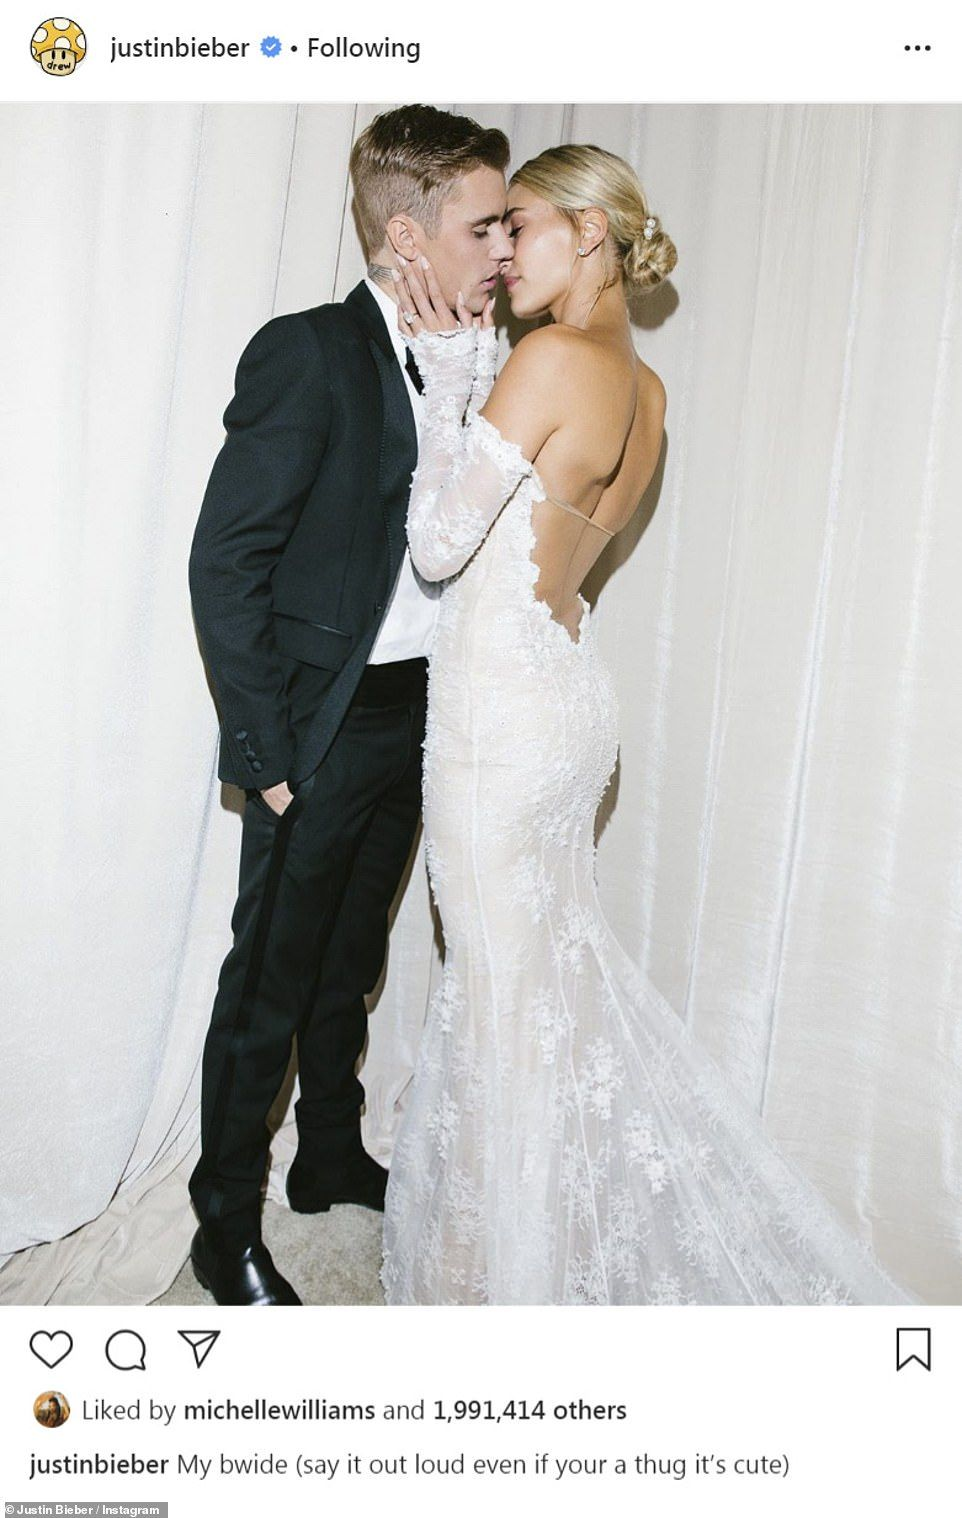 Justin and Hailey Bieber share official wedding portraits